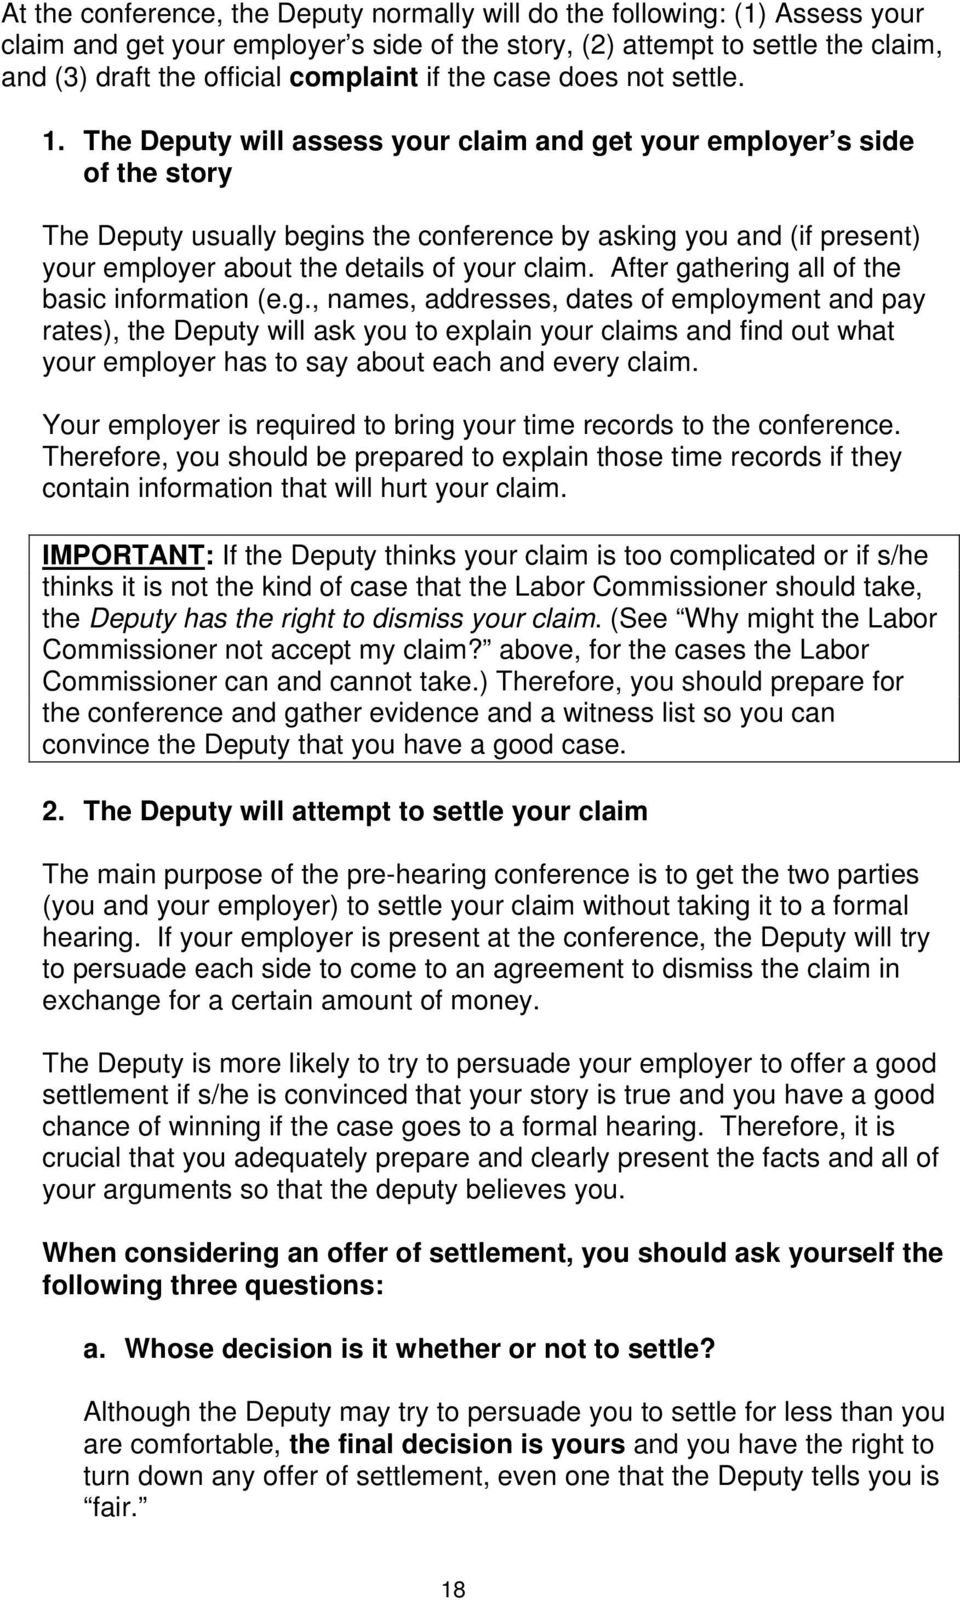 The Deputy will assess your claim and get your employer s side of the story The Deputy usually begins the conference by asking you and (if present) your employer about the details of your claim.